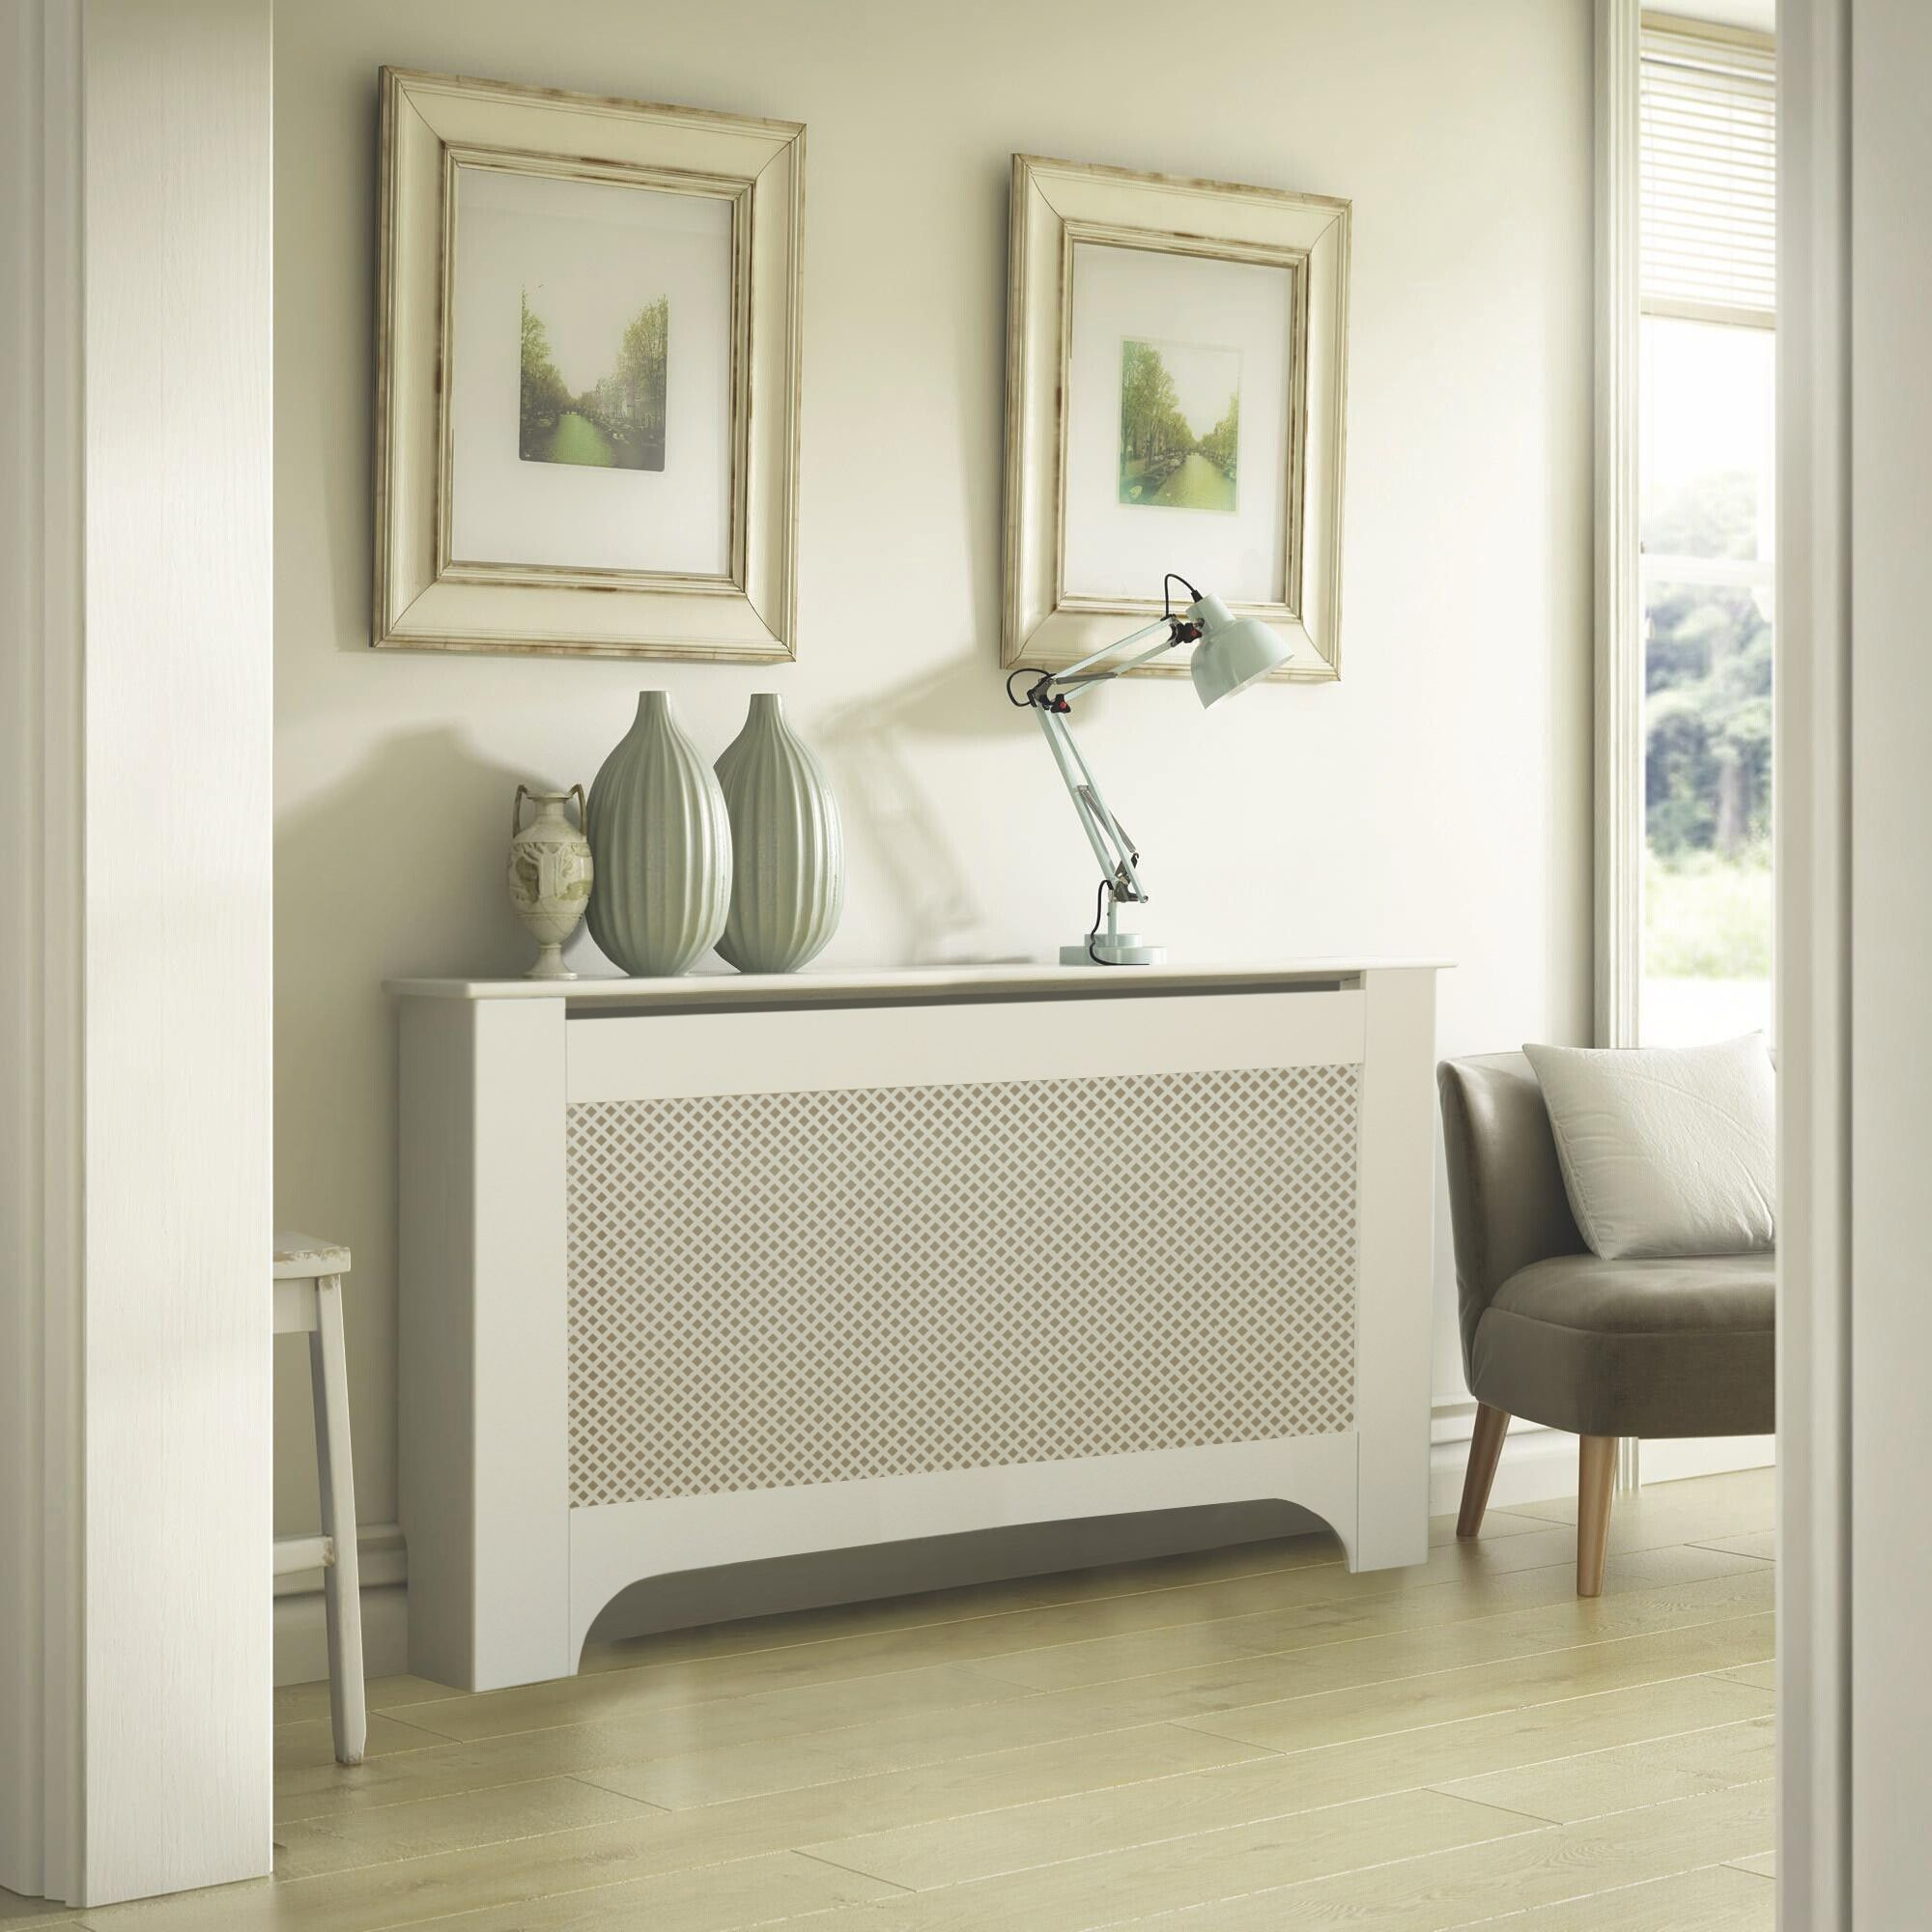 Mayfair Large White Painted Radiator Cover Departments